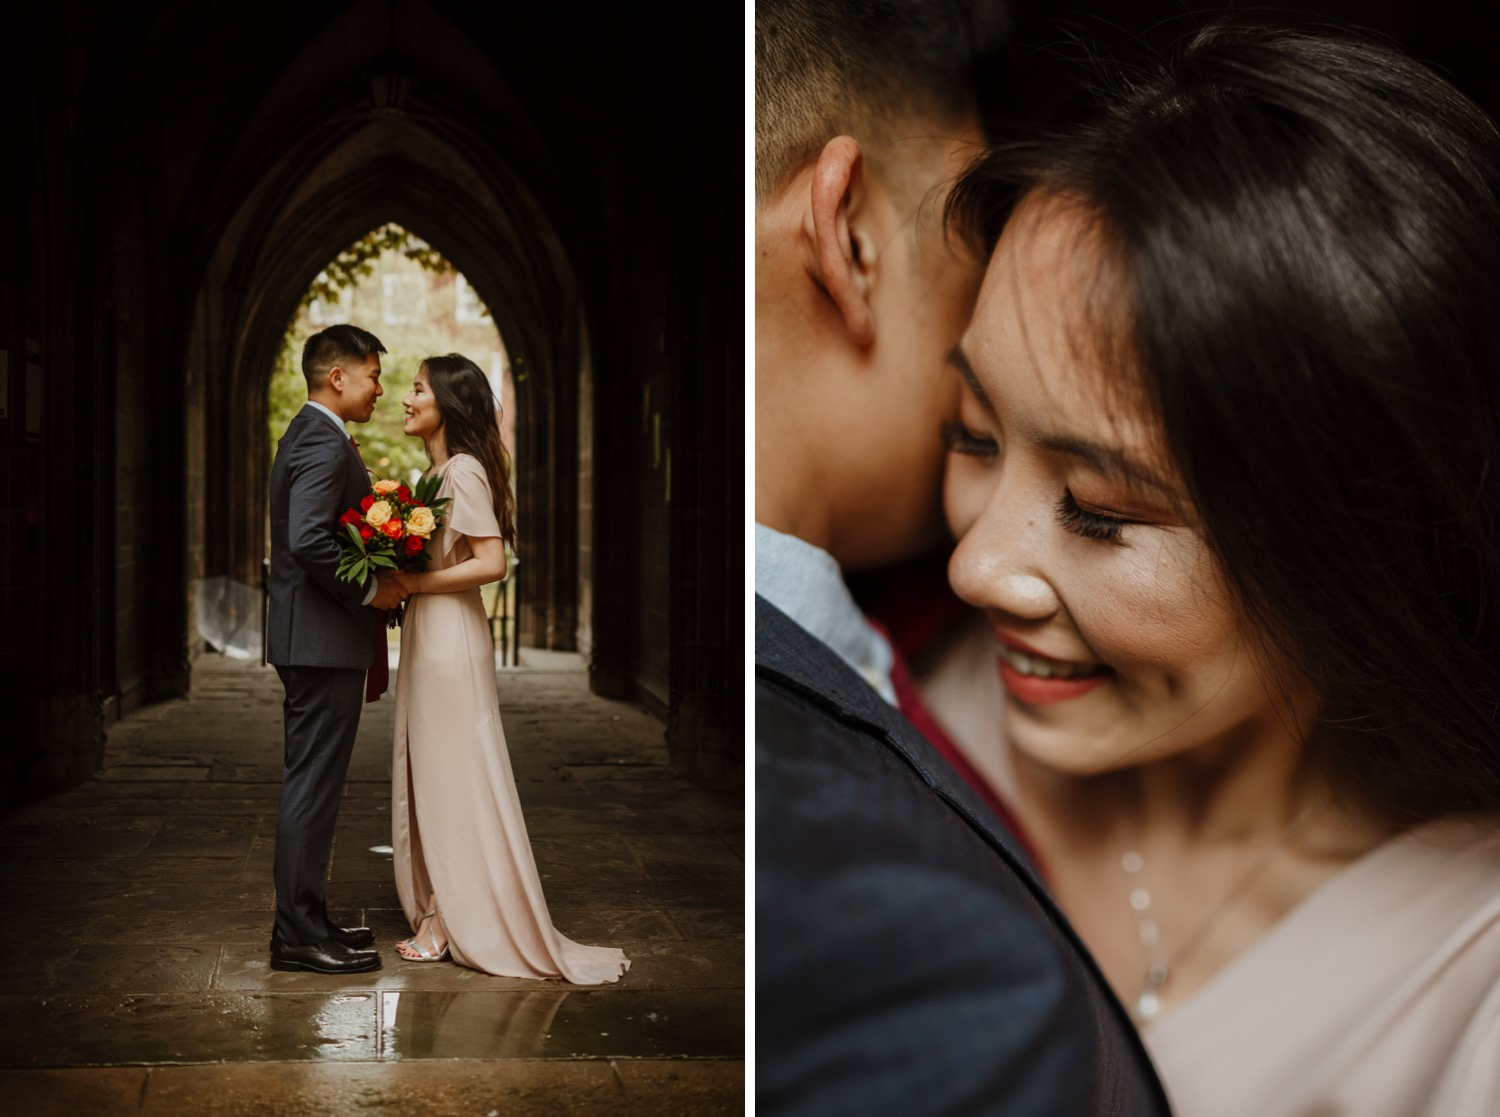 Intimate portrait of the bride and groom at university of Chicago